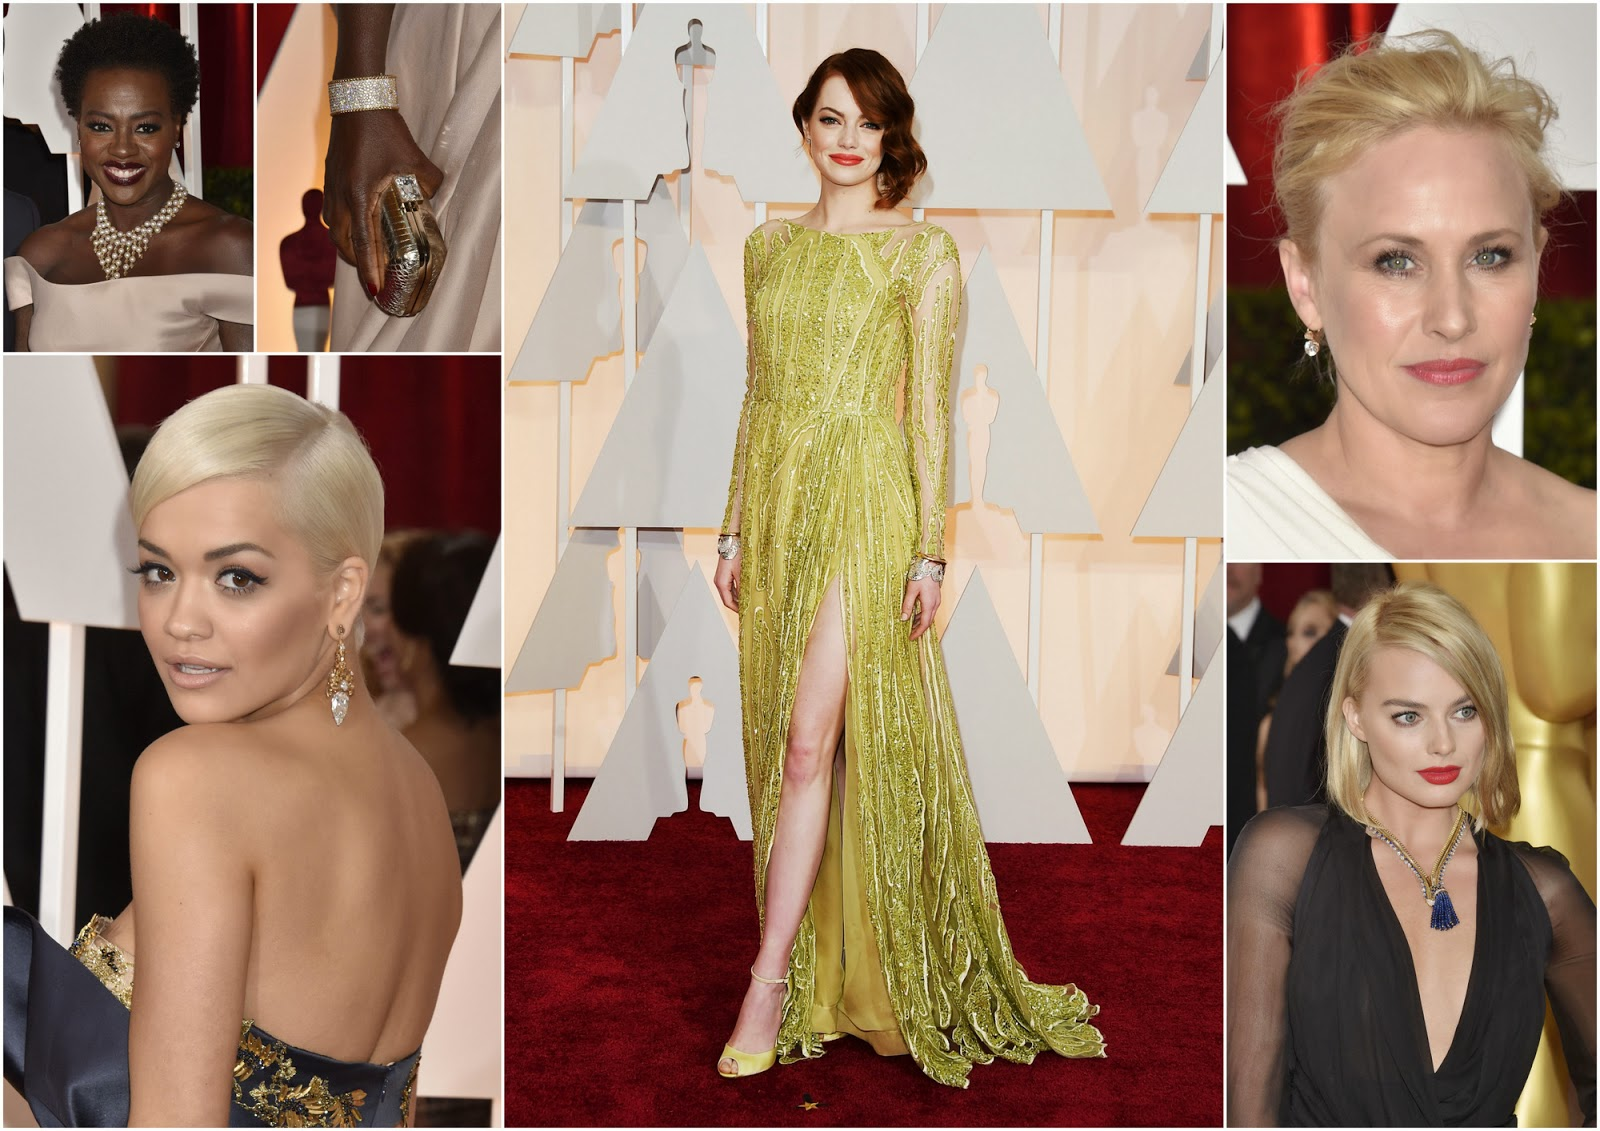 Celebrities that wore GOLD jewelry to the Academy Awards